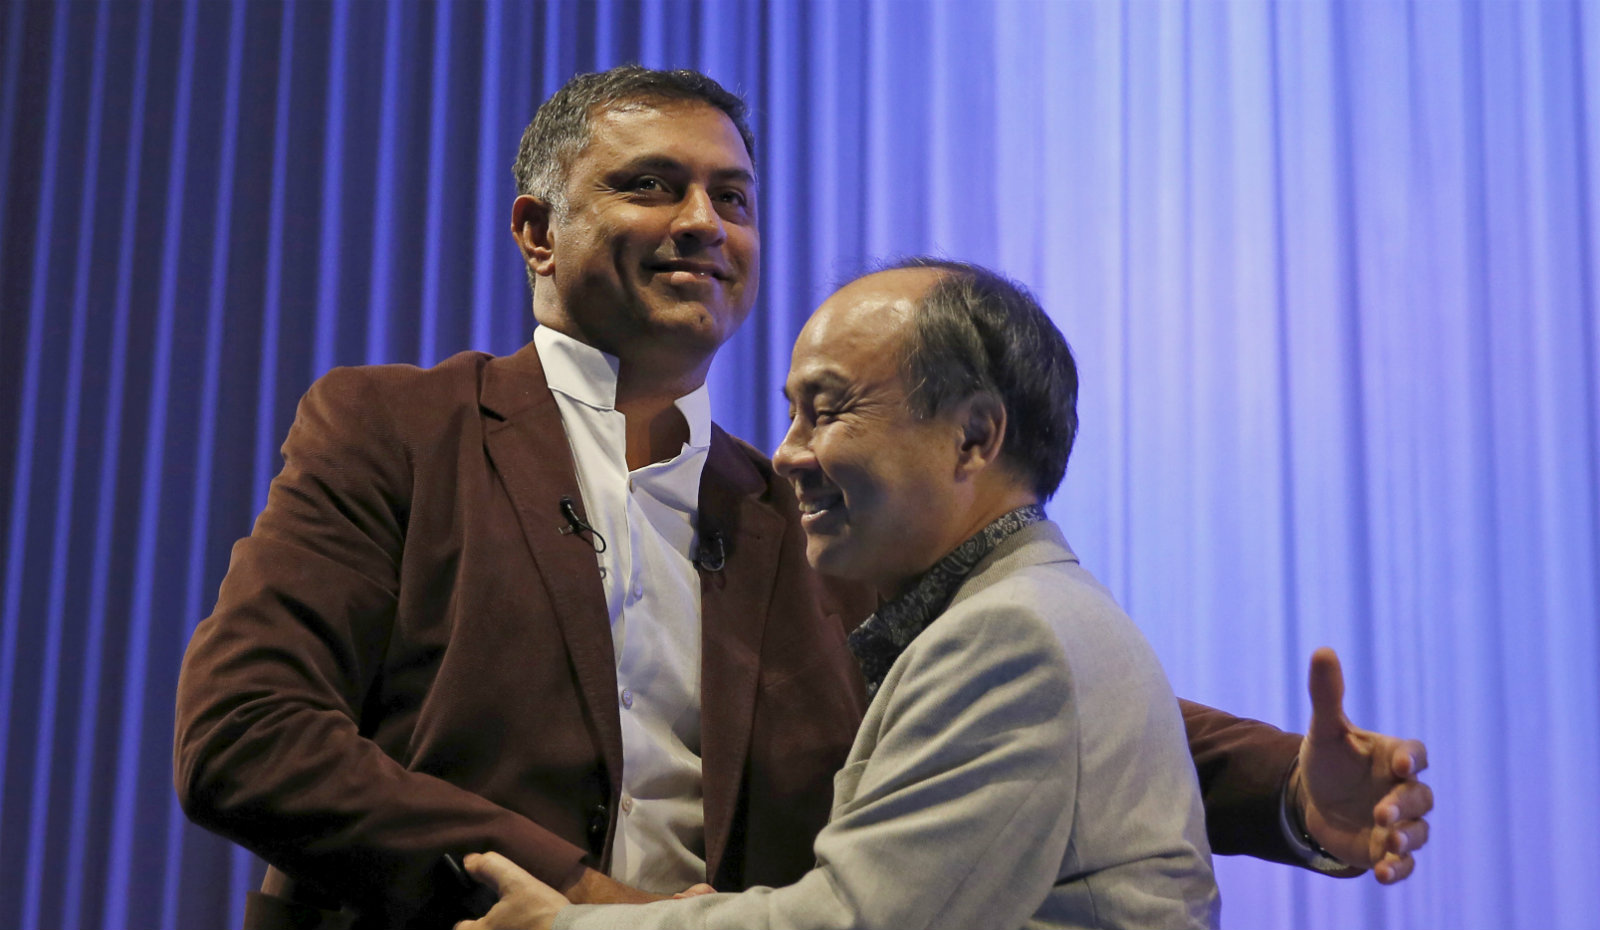 SoftBank Group Corp. Chairman and CEO Masayoshi Son (R) and President and COO Nikesh Arora shake hands during a special lecture of the SoftBank Academia in Tokyo, Japan October 22, 2015.